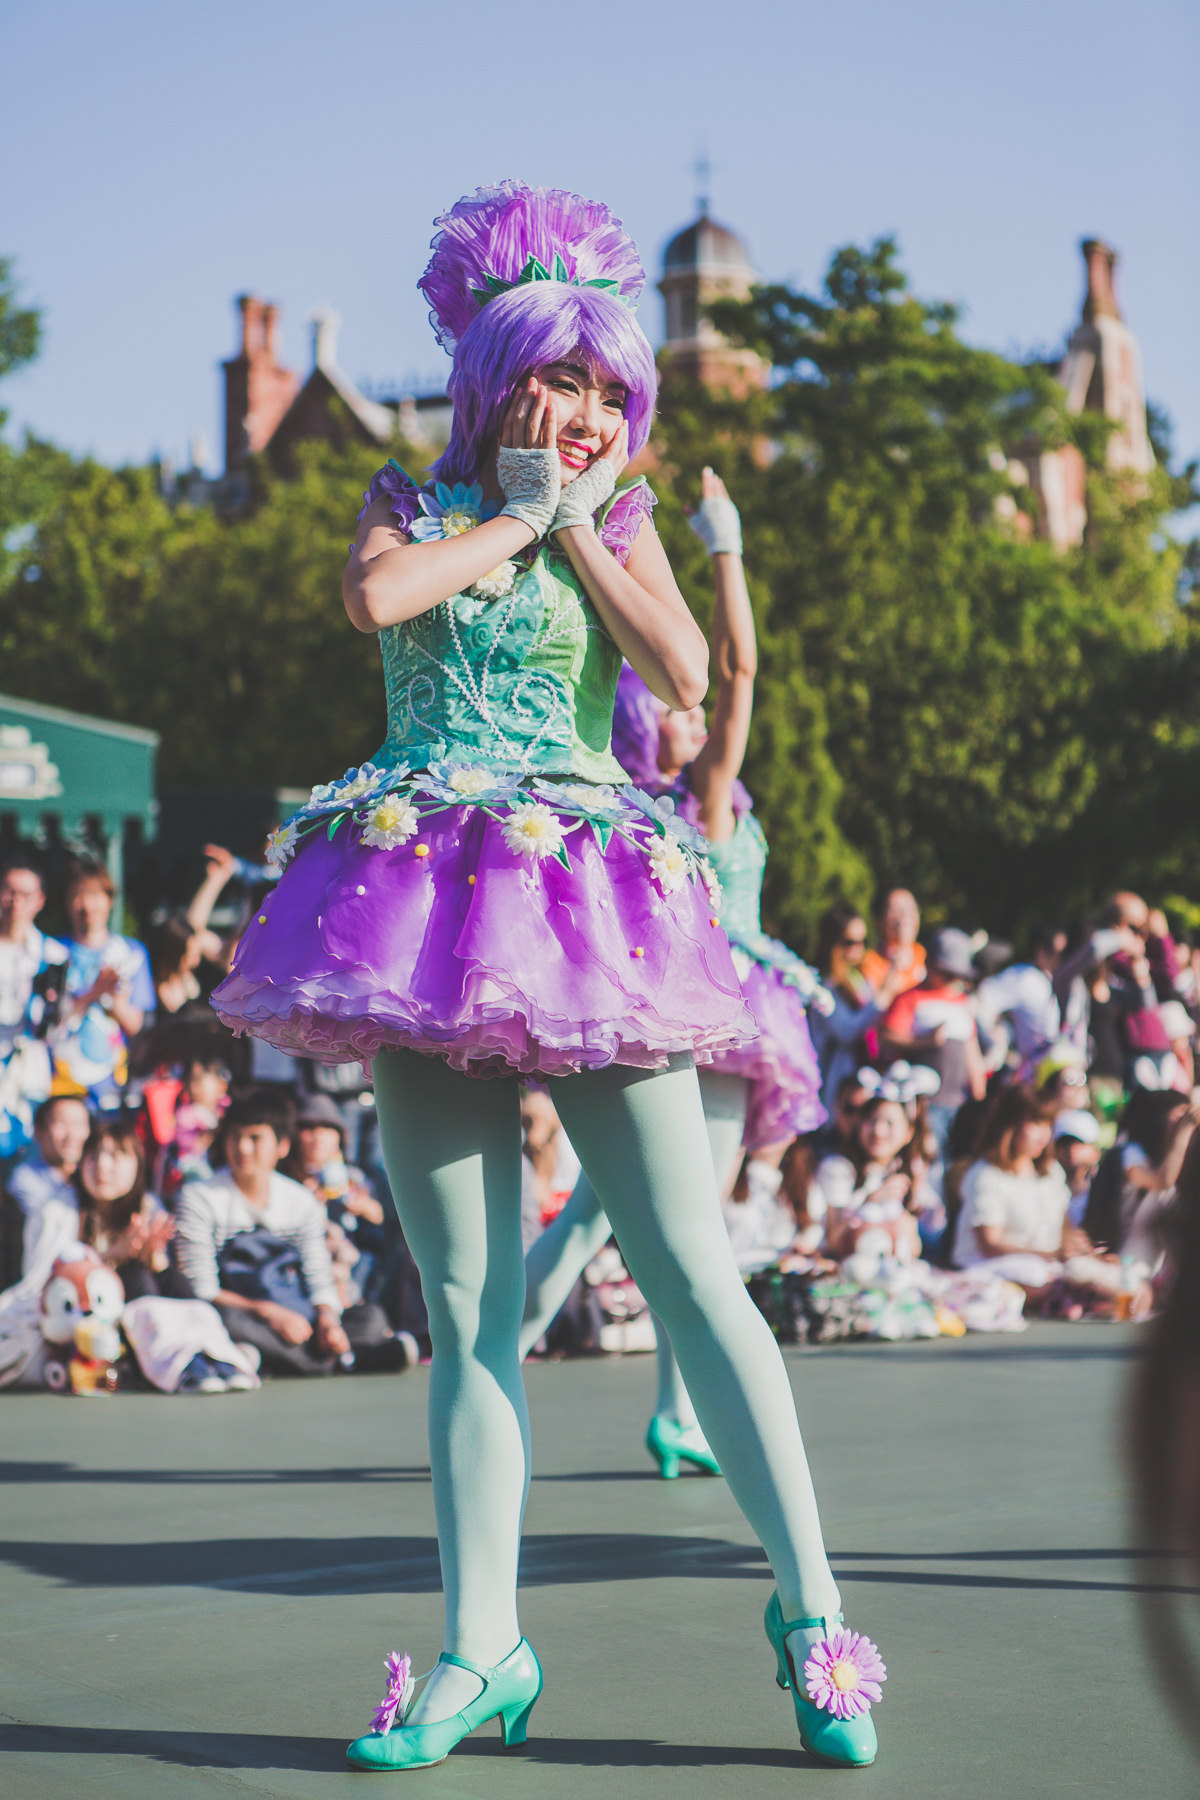 cute japanese girl in colourful outfit at disneyland